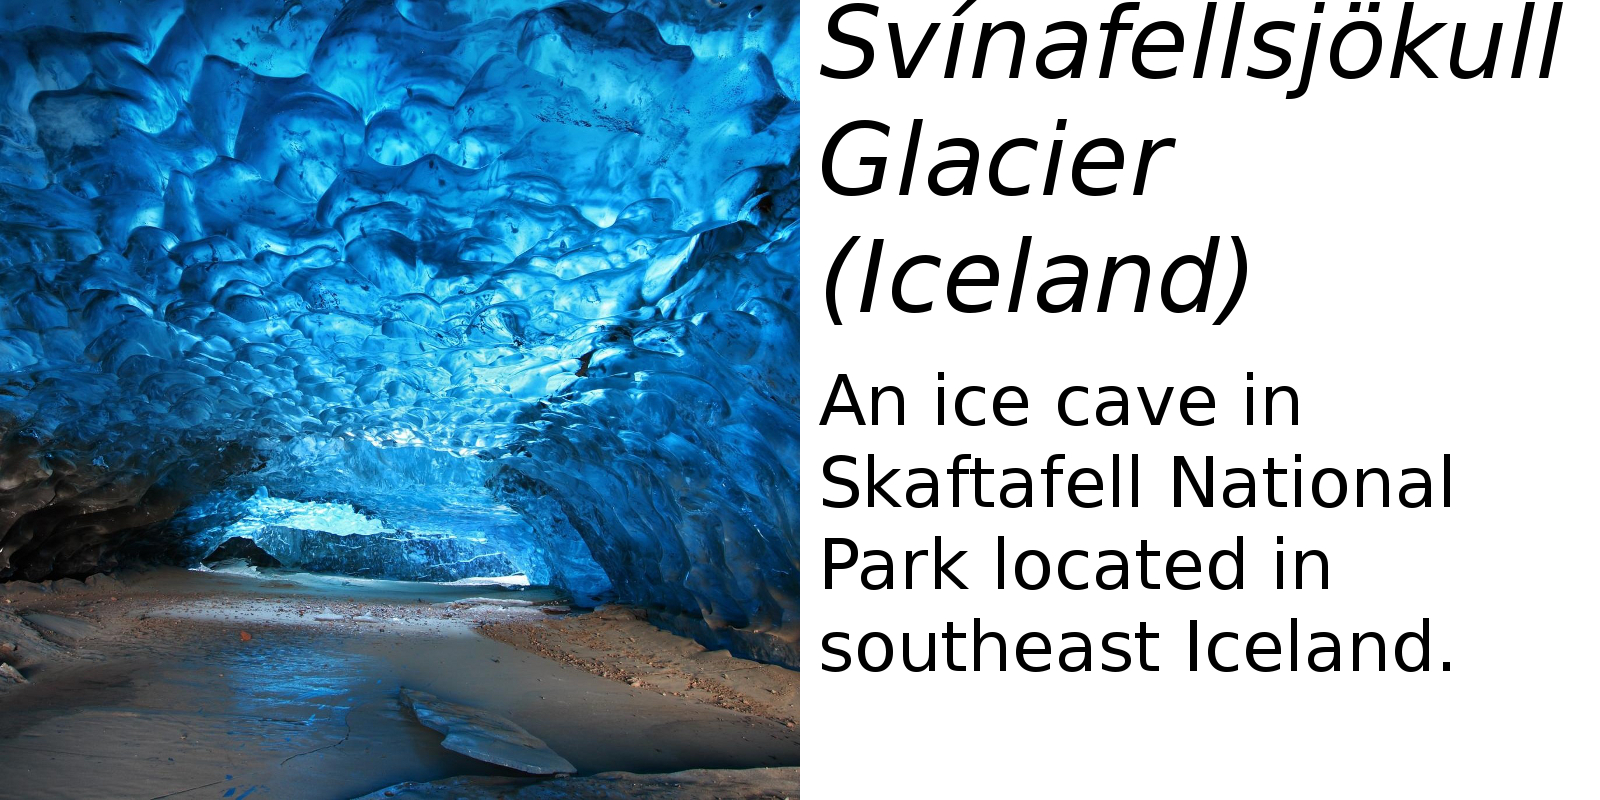 Svínafellsjökull Glacier, Iceland (description) #2